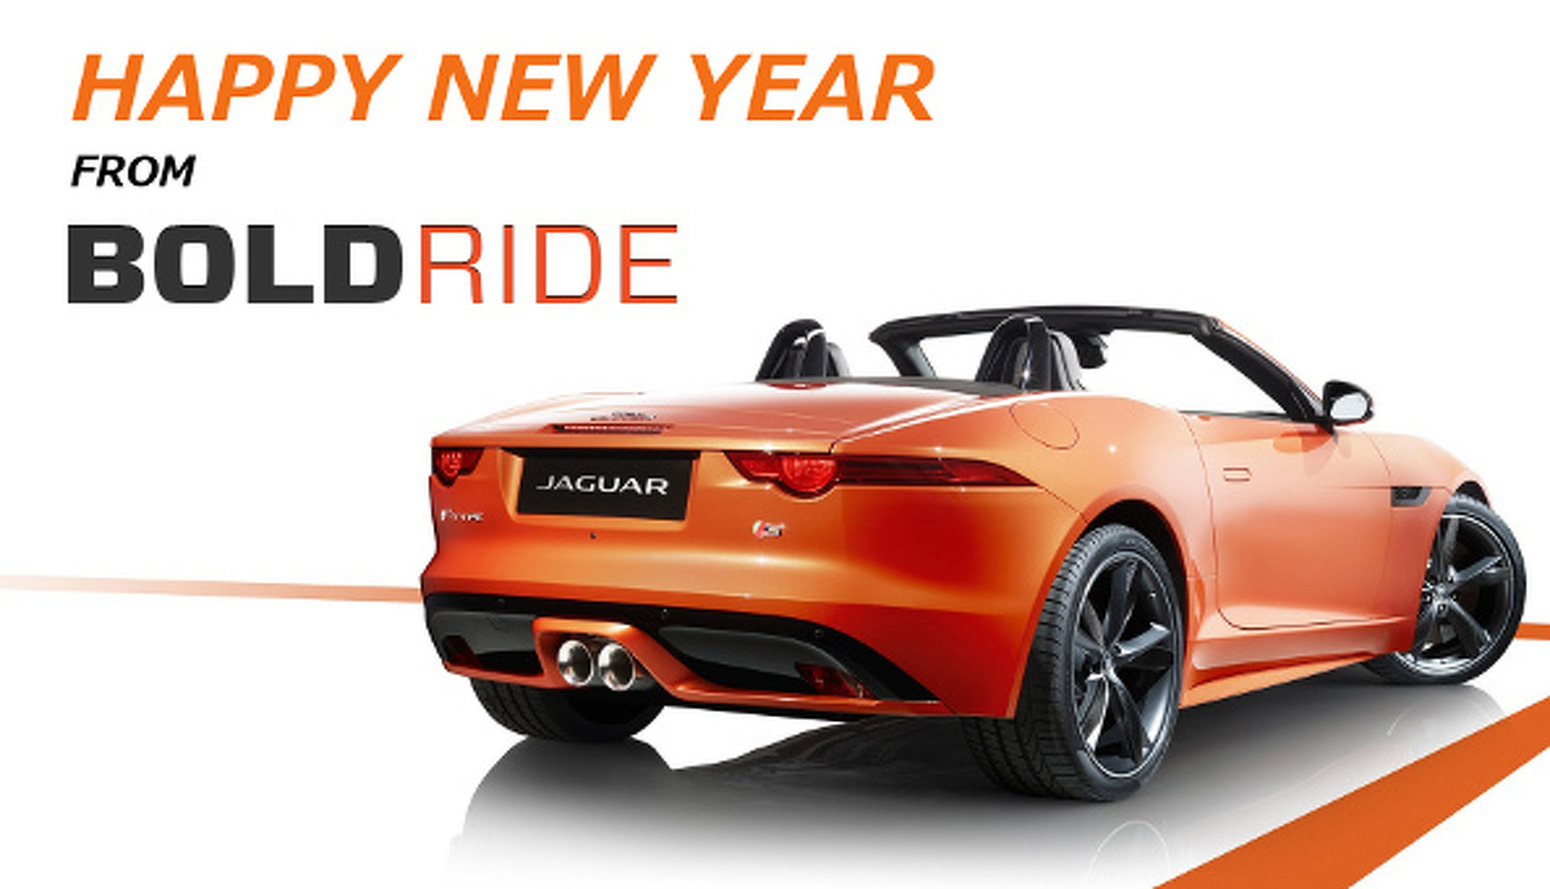 Happy New Year from BoldRide!